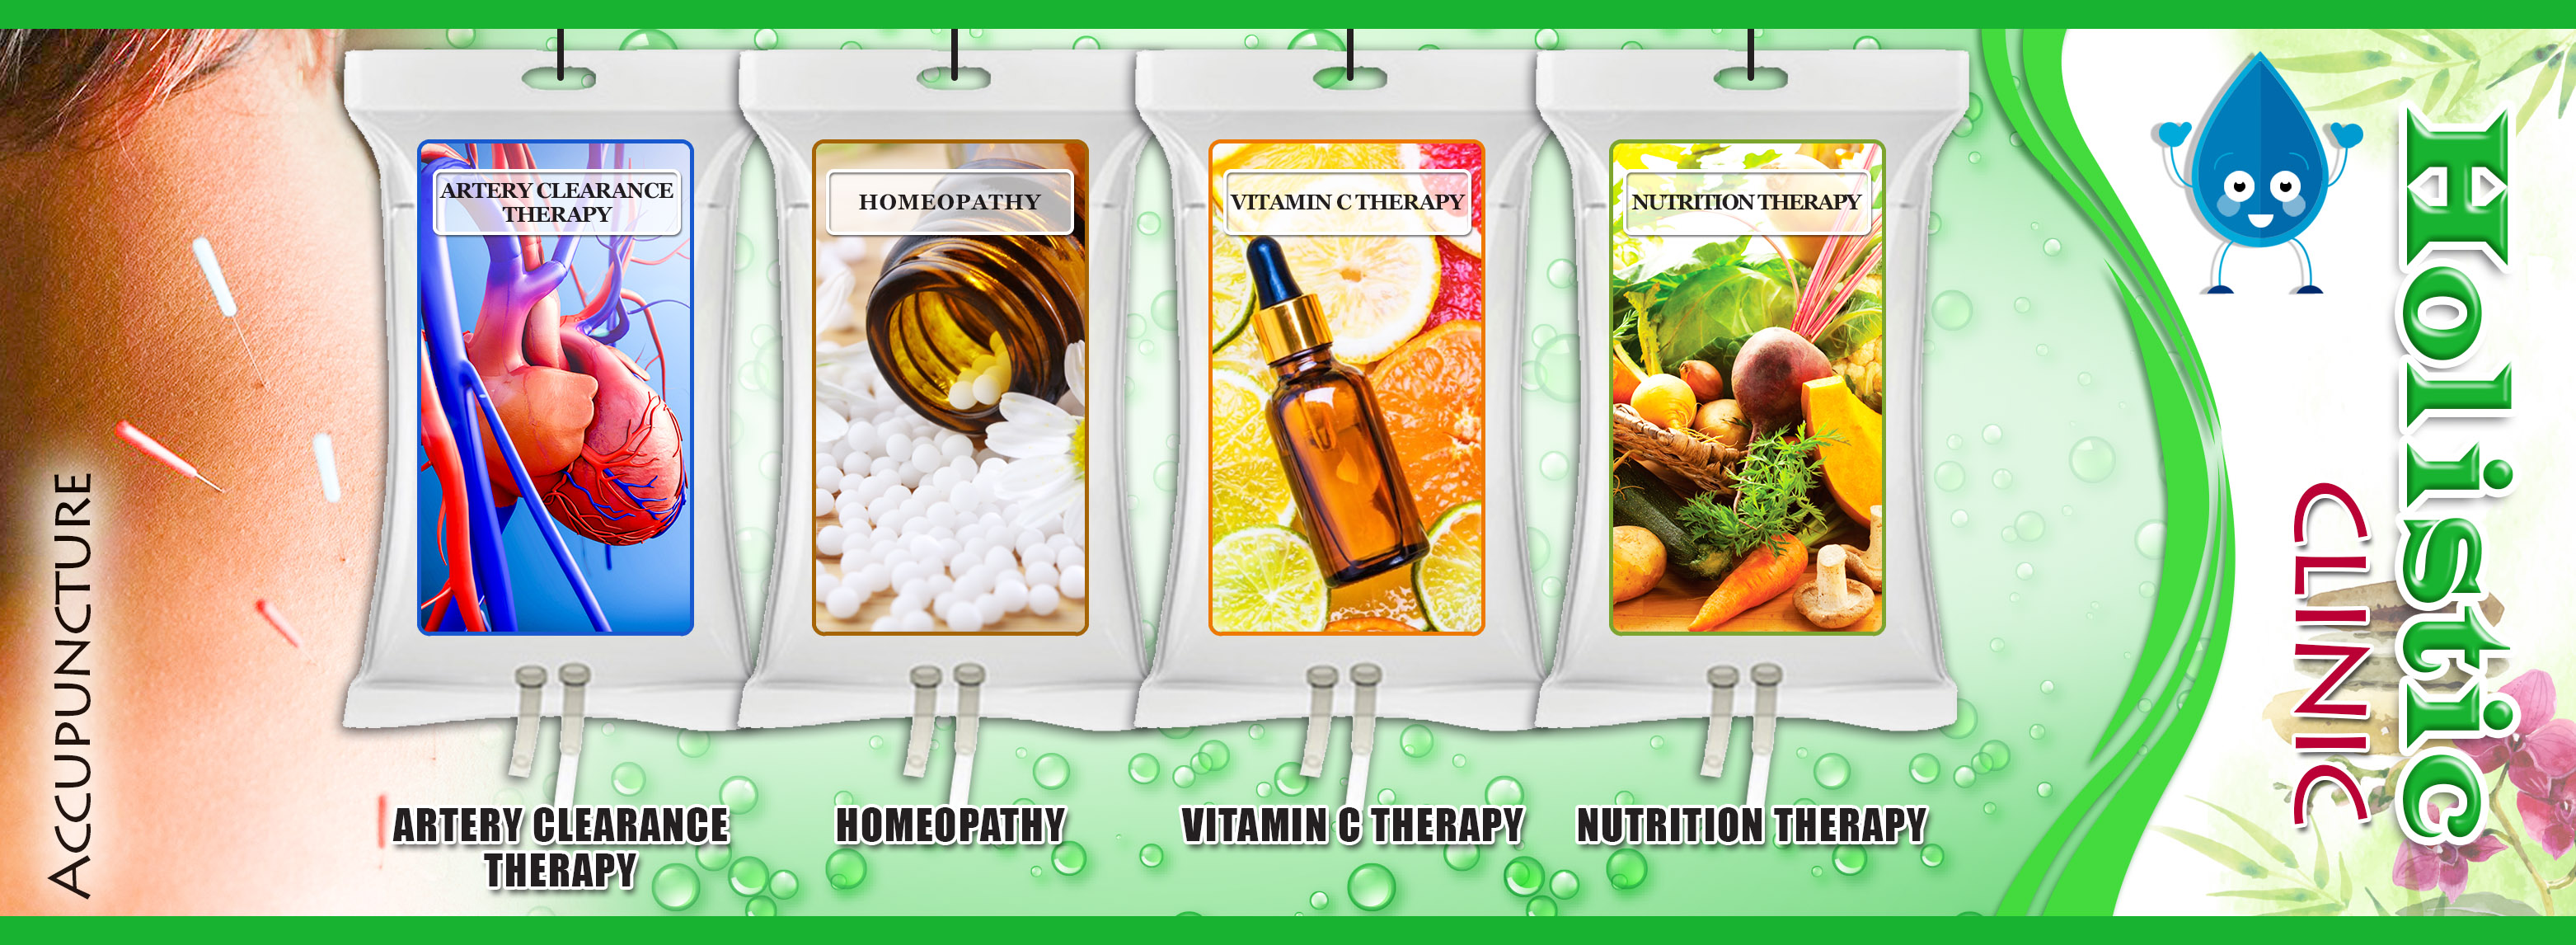 Playful Modern Health And Wellness Banner Ad Design For A Company By Ashiq Gill 2 Design 22140508